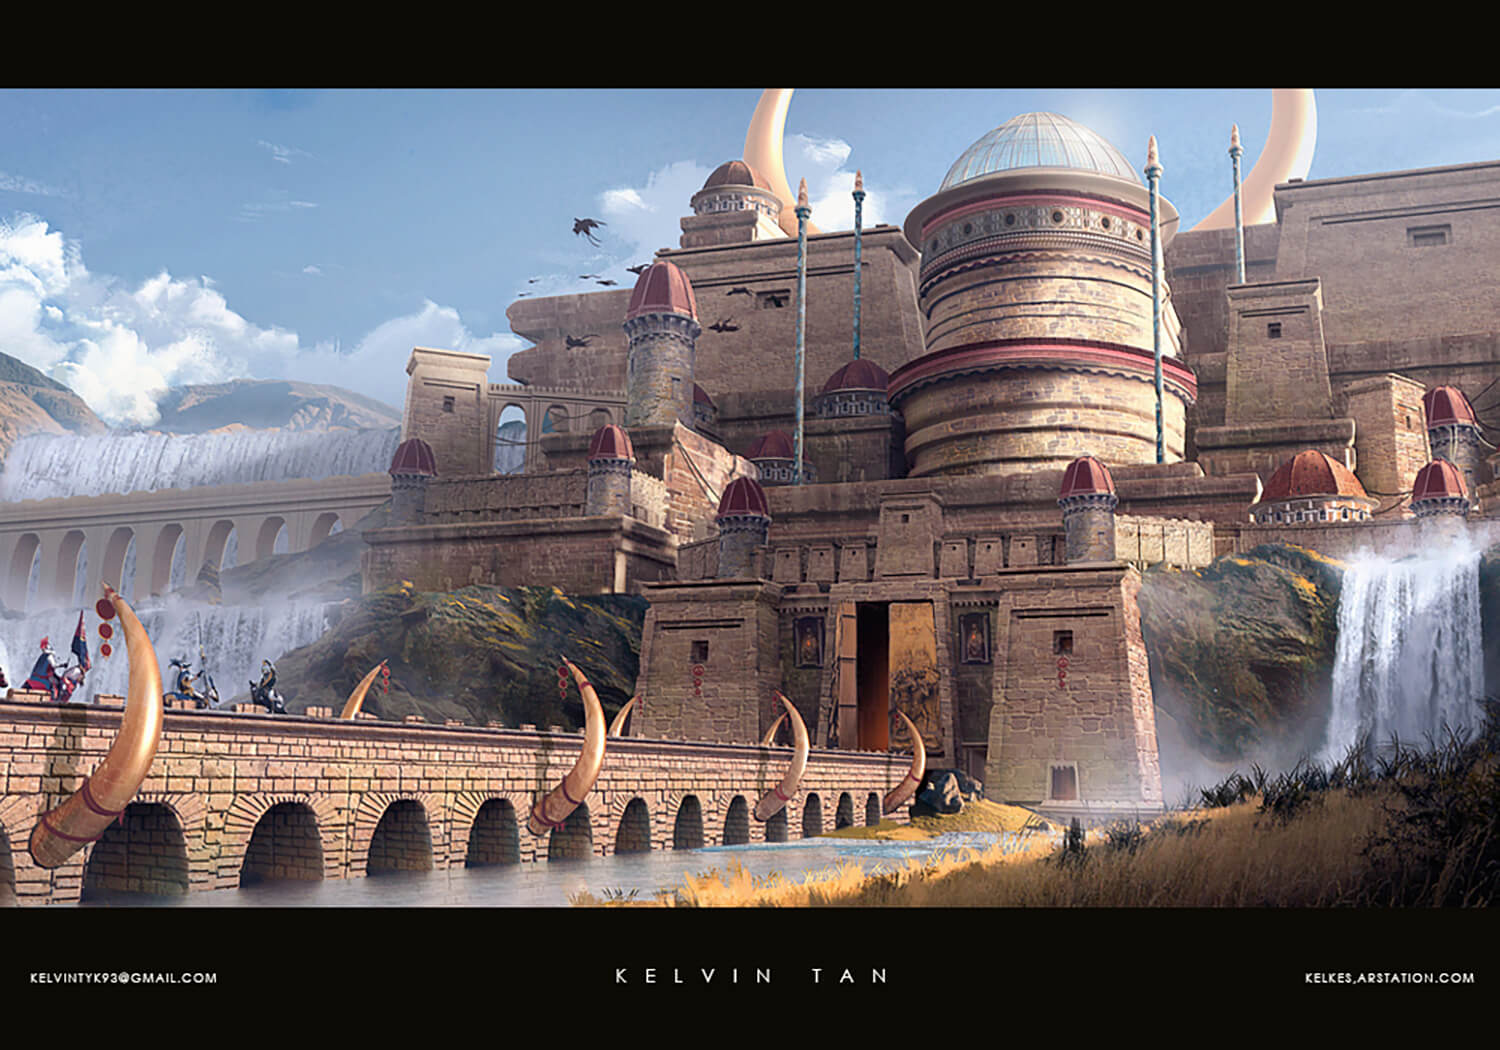 The capital city of the Kalderian people. A metropolitan consisting of various cultures, where trade and wealth flowed.